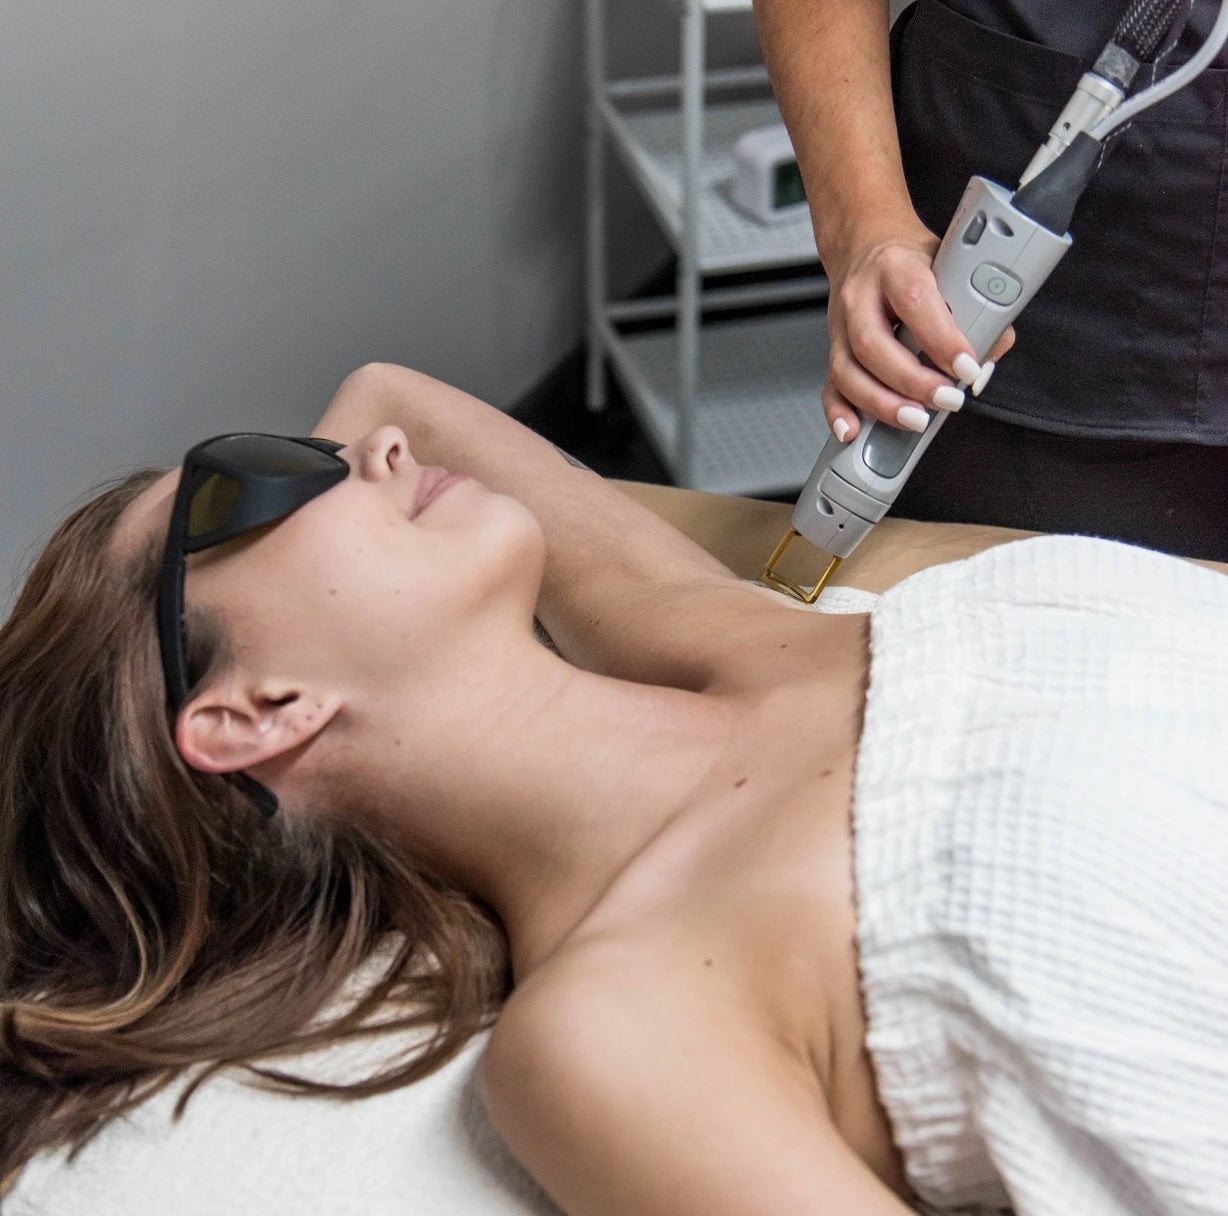 A woman receiving laser hair removal treatment under arms